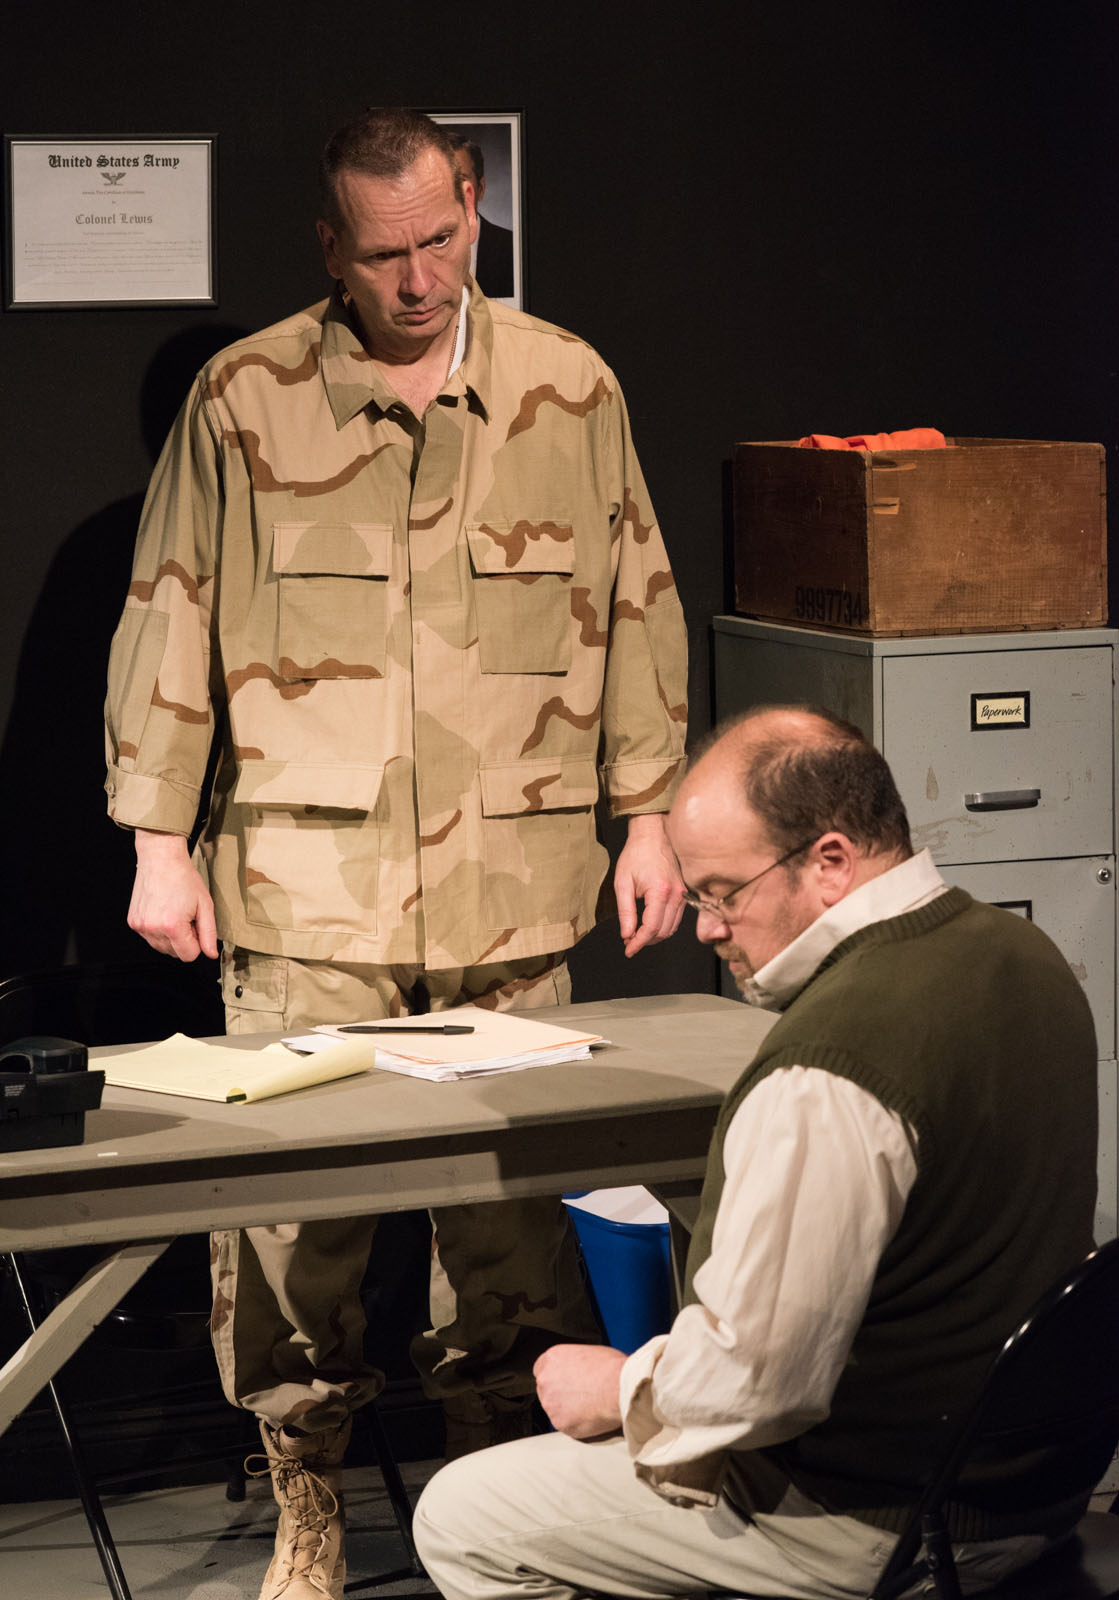 """Tony St. Clair as Col. Lewis and Steve Silver as Ayyub in """"Skin for Skin"""" from The Agency Theatre Collective. Photo by Bill Richert."""